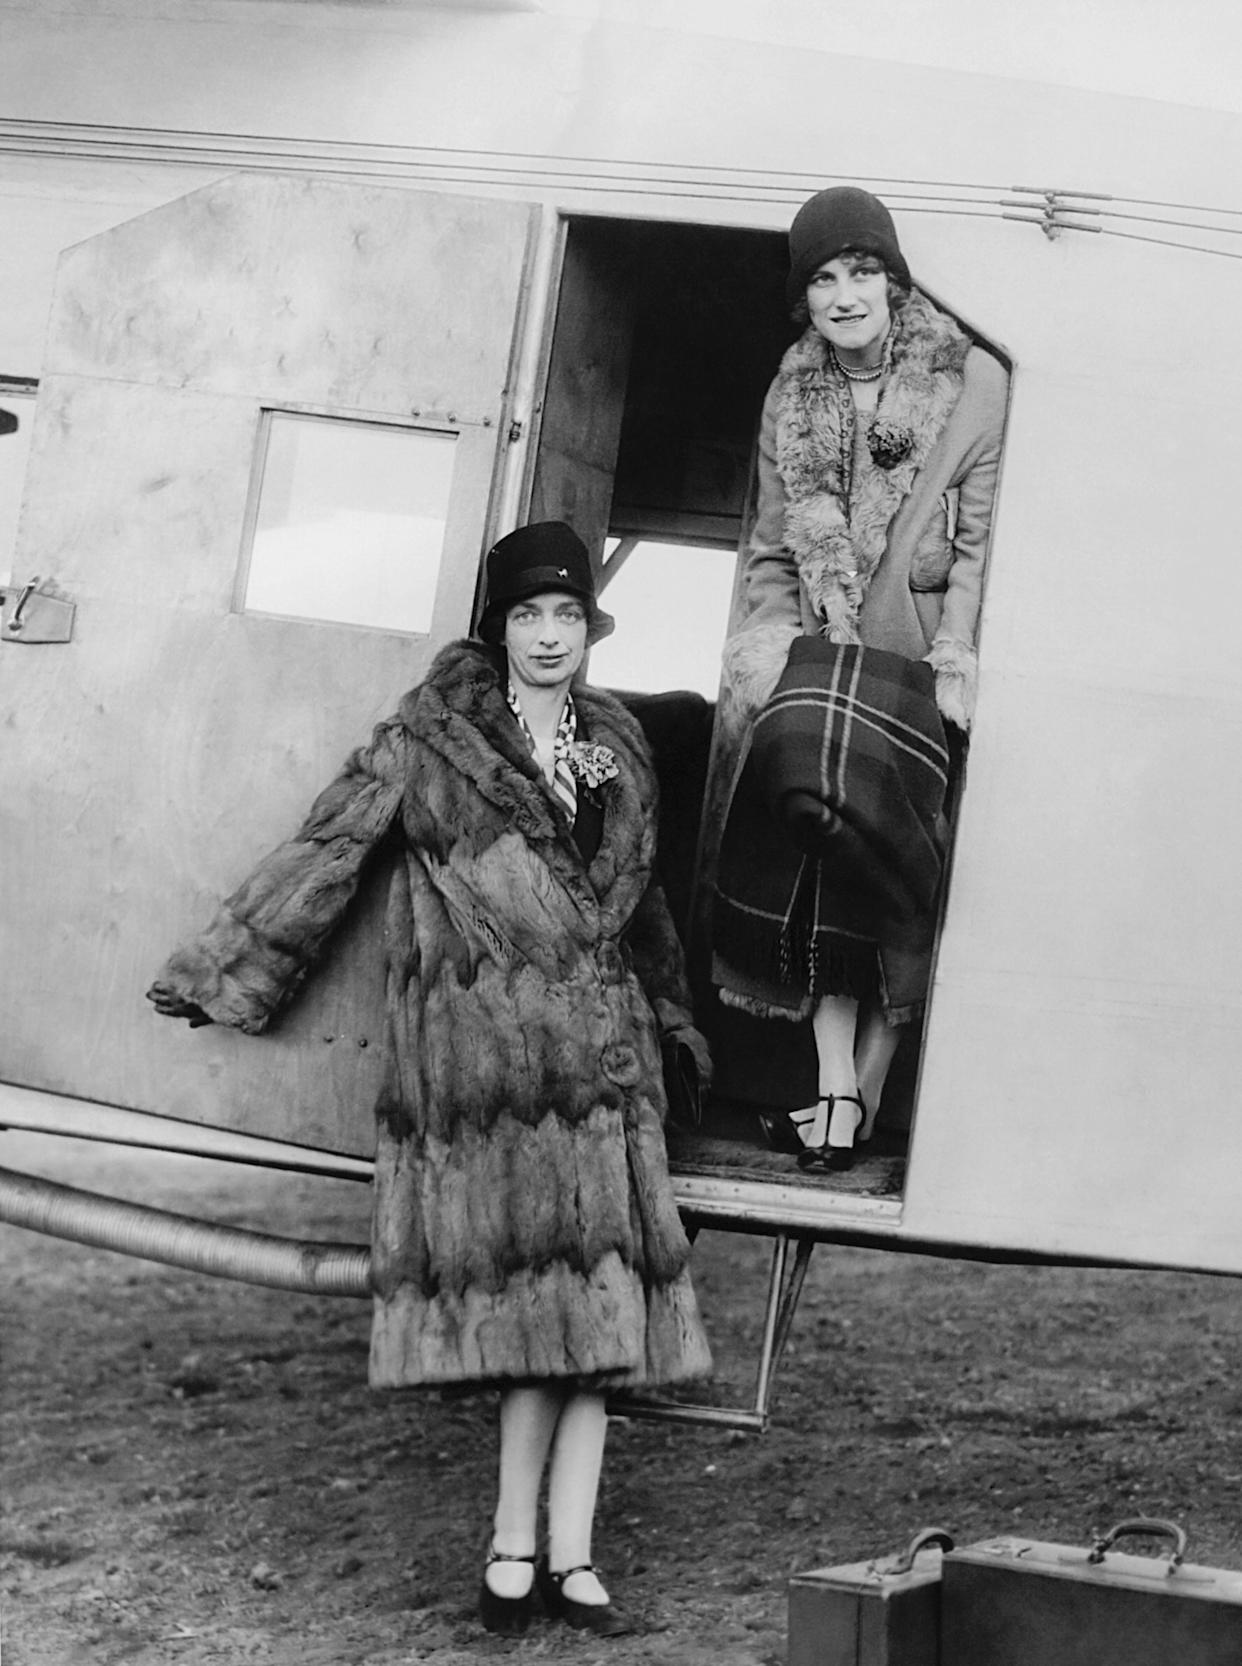 The official opening of an airline passenger service between Boston and New York took place when the first two women to make the night trip alighted from the air mail plane in New York on April 5, 1927. The fare was $25 per person.